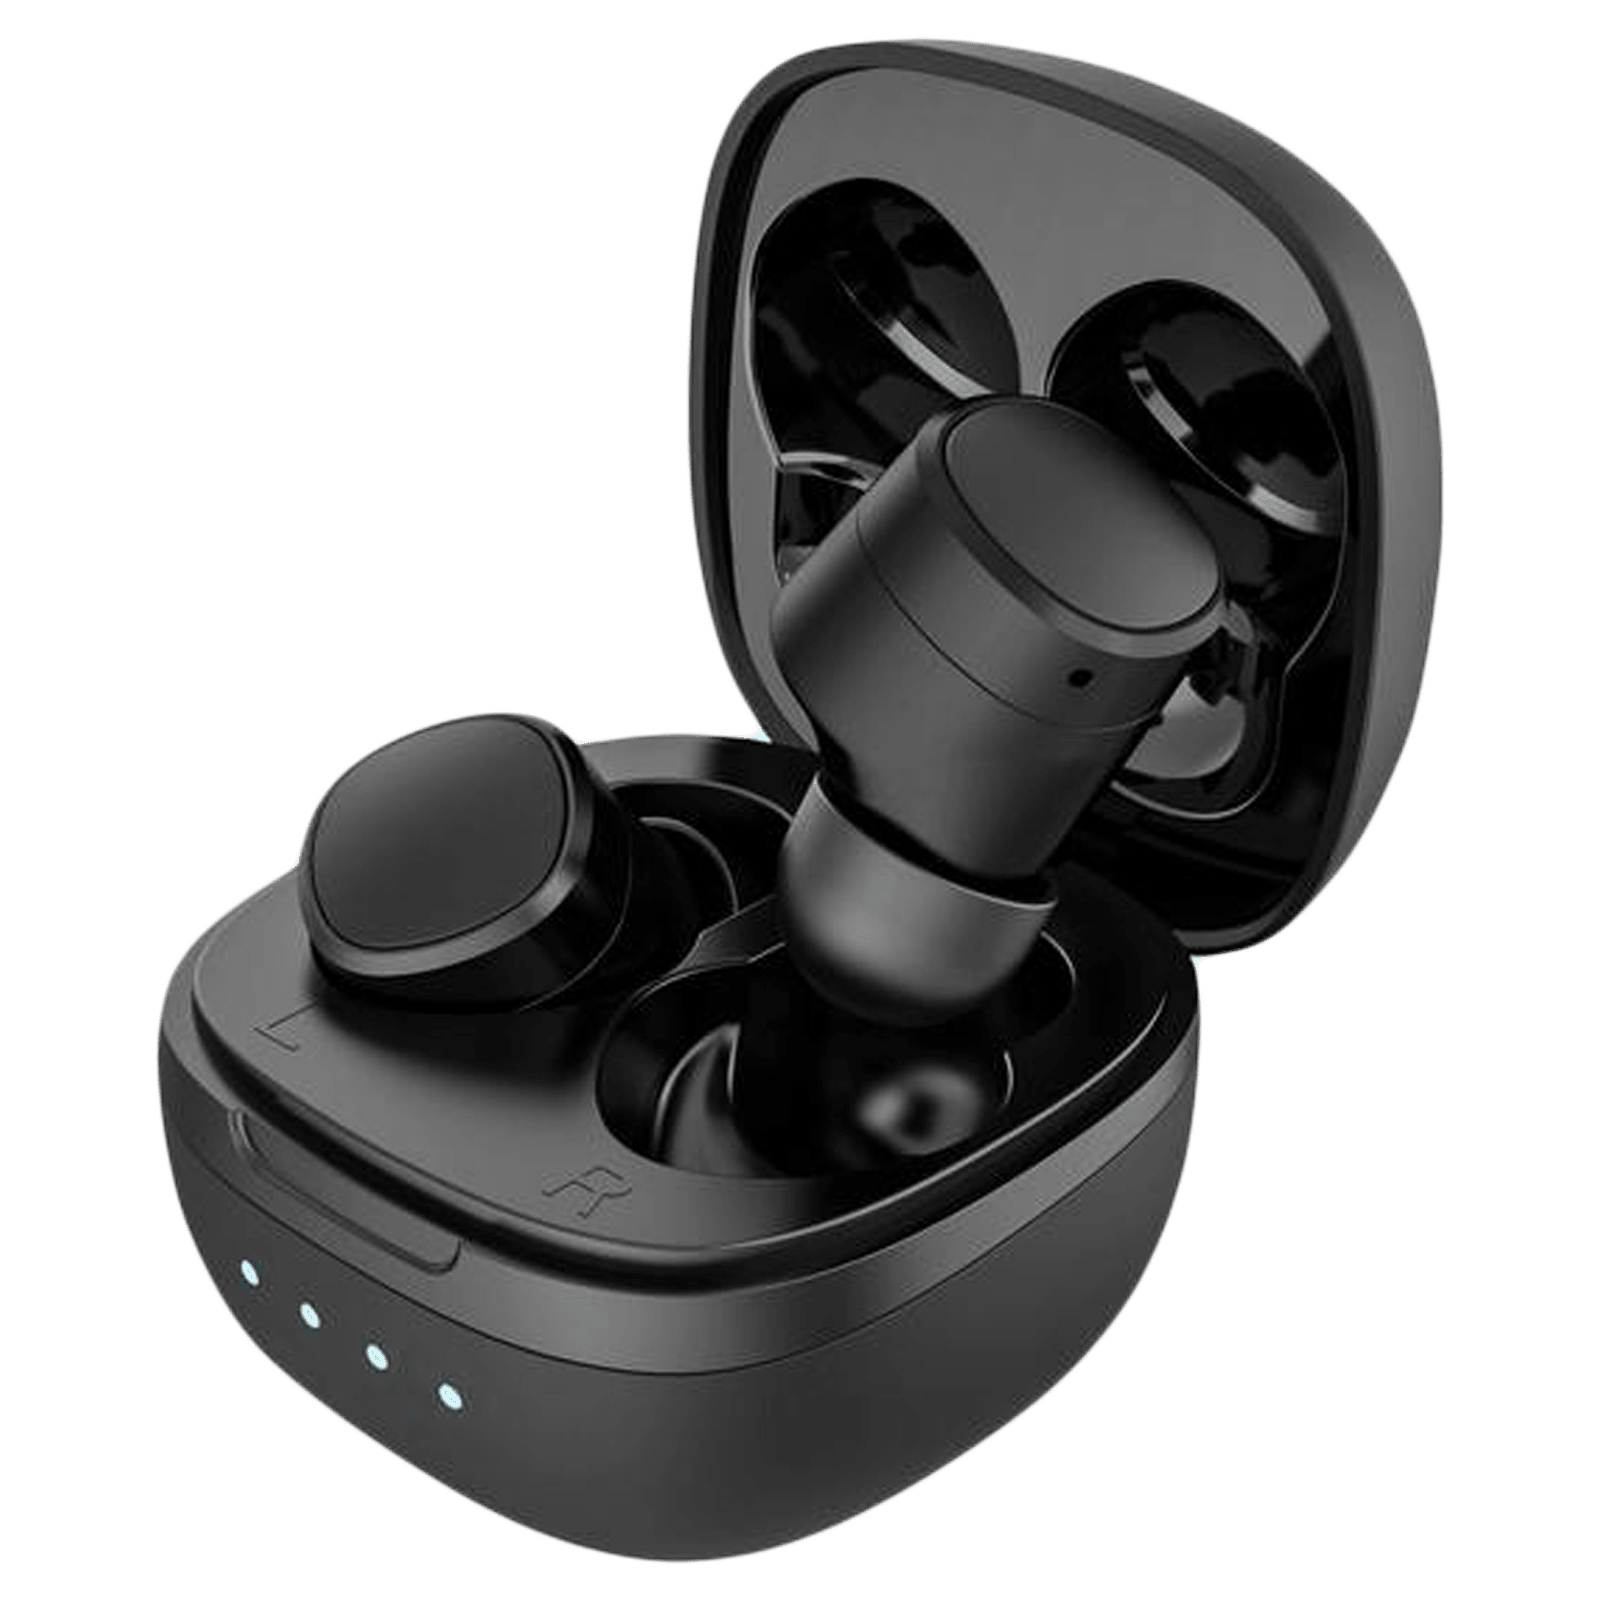 Ambrane NeoBuds 22 In-Ear Truly Wireless Earbuds with Mic (Bluetooth 5.0, Clear Calling, Black)